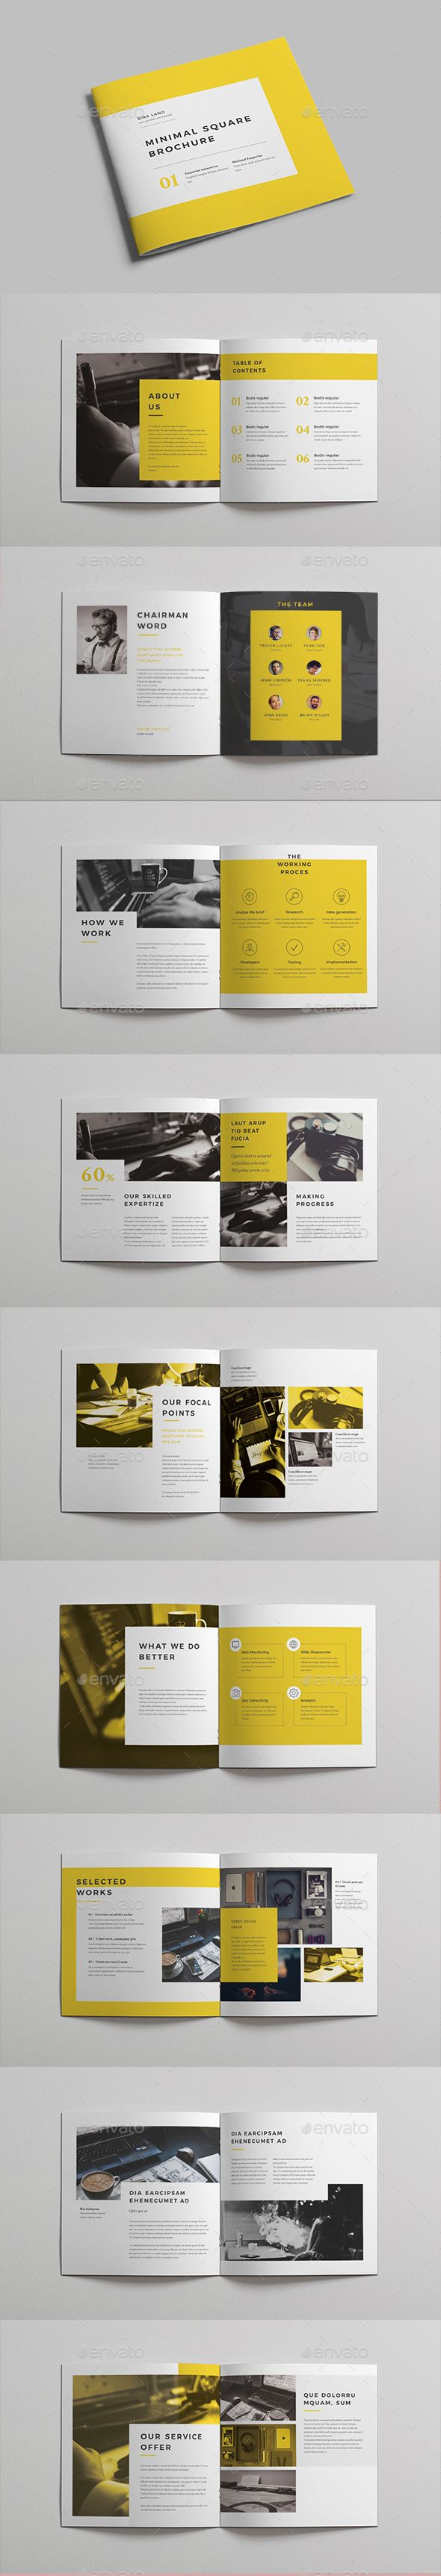 Minimal Square Brochure vol 2 — InDesign INDD #8x8 #creative • Download ➝ https://graphicriver.net/item/minimal-square-brochure-vol-2/19408752?ref=pxcr